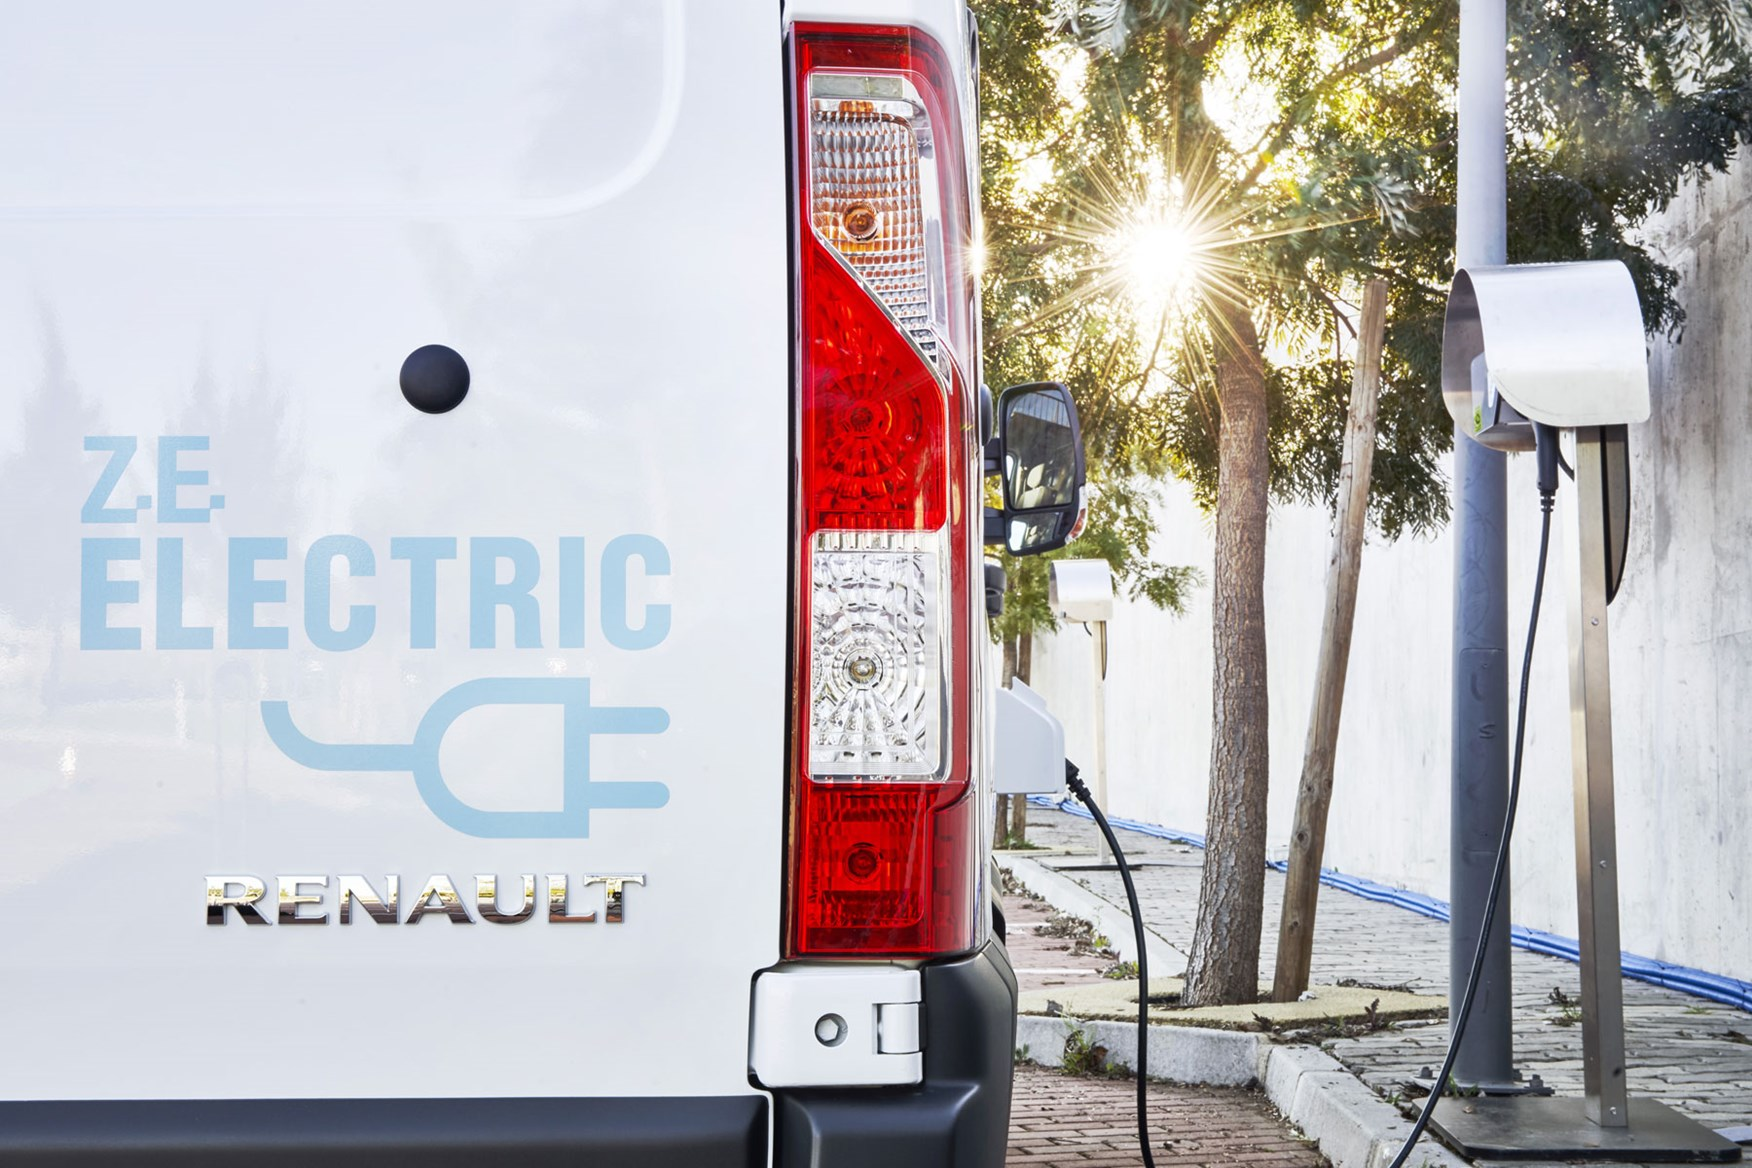 Renault Master ZE electric van review, 2020 - electric graphic on rear door, close up